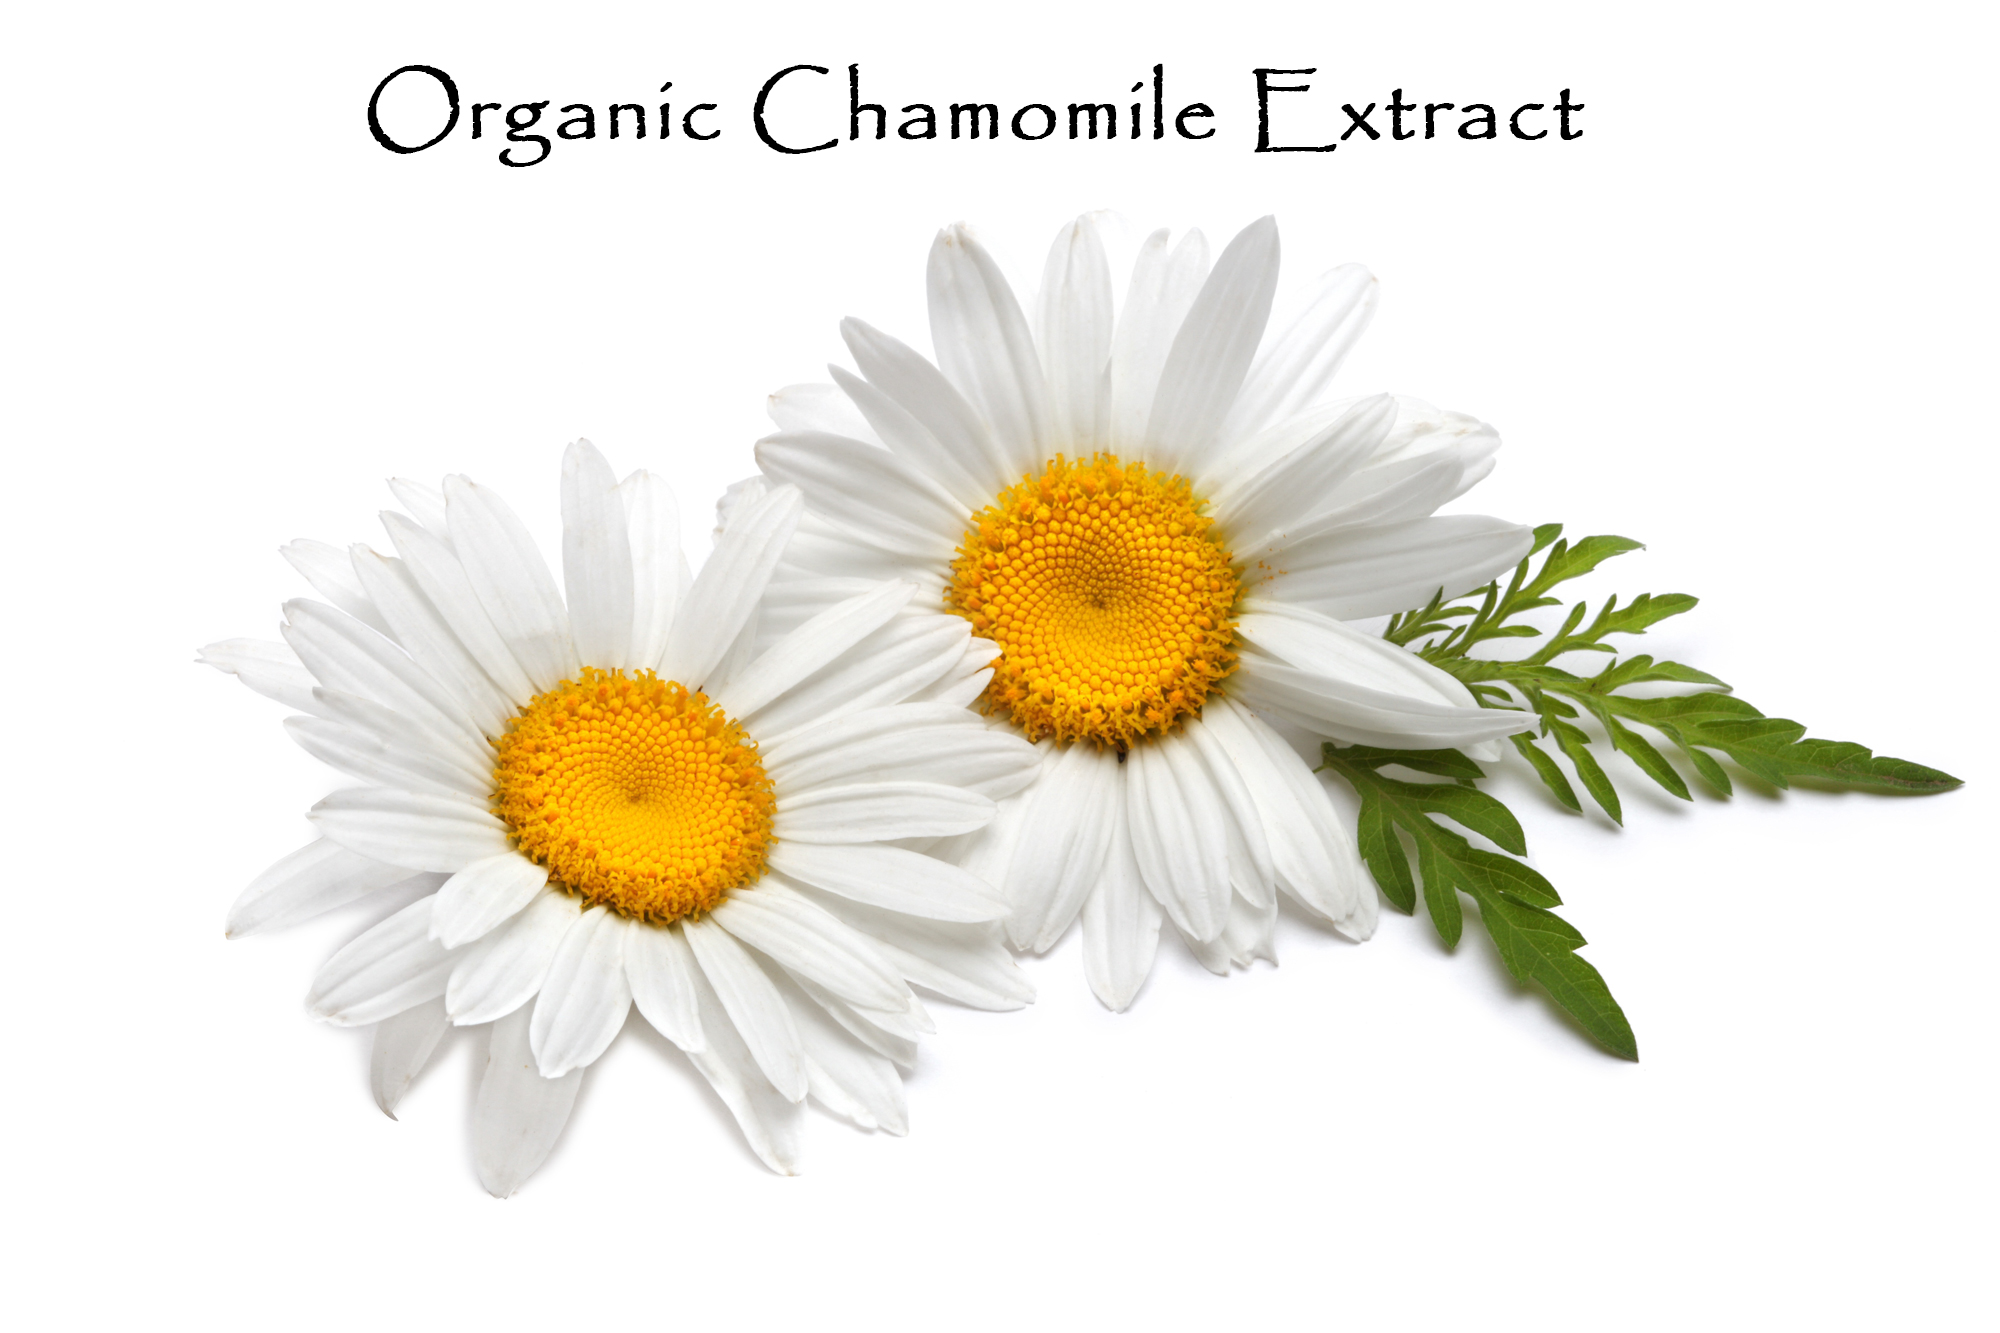 Used for thousands of year for its incredible health benefits recent and on-going research has identified chamomile's specific anti-inflammatory, anti-bacterial, muscle relaxant, antispasmodic, anti-allergenic and sedative properties, validating its long-held reputation.